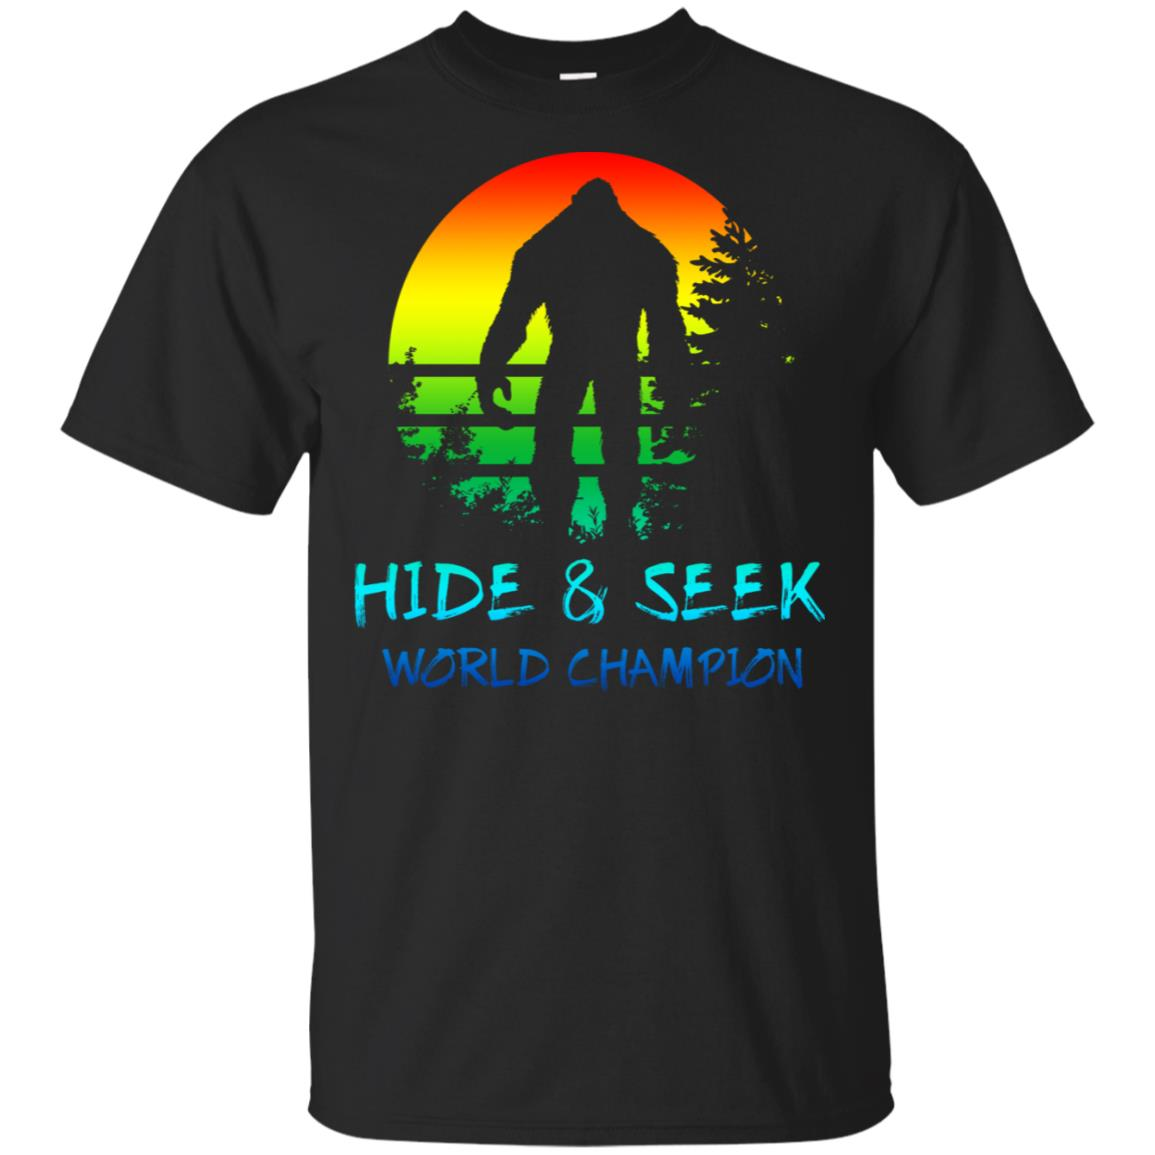 Bigfoot Hide & Seek Champion Sasquatch Yeti Unisex Short Sleeve